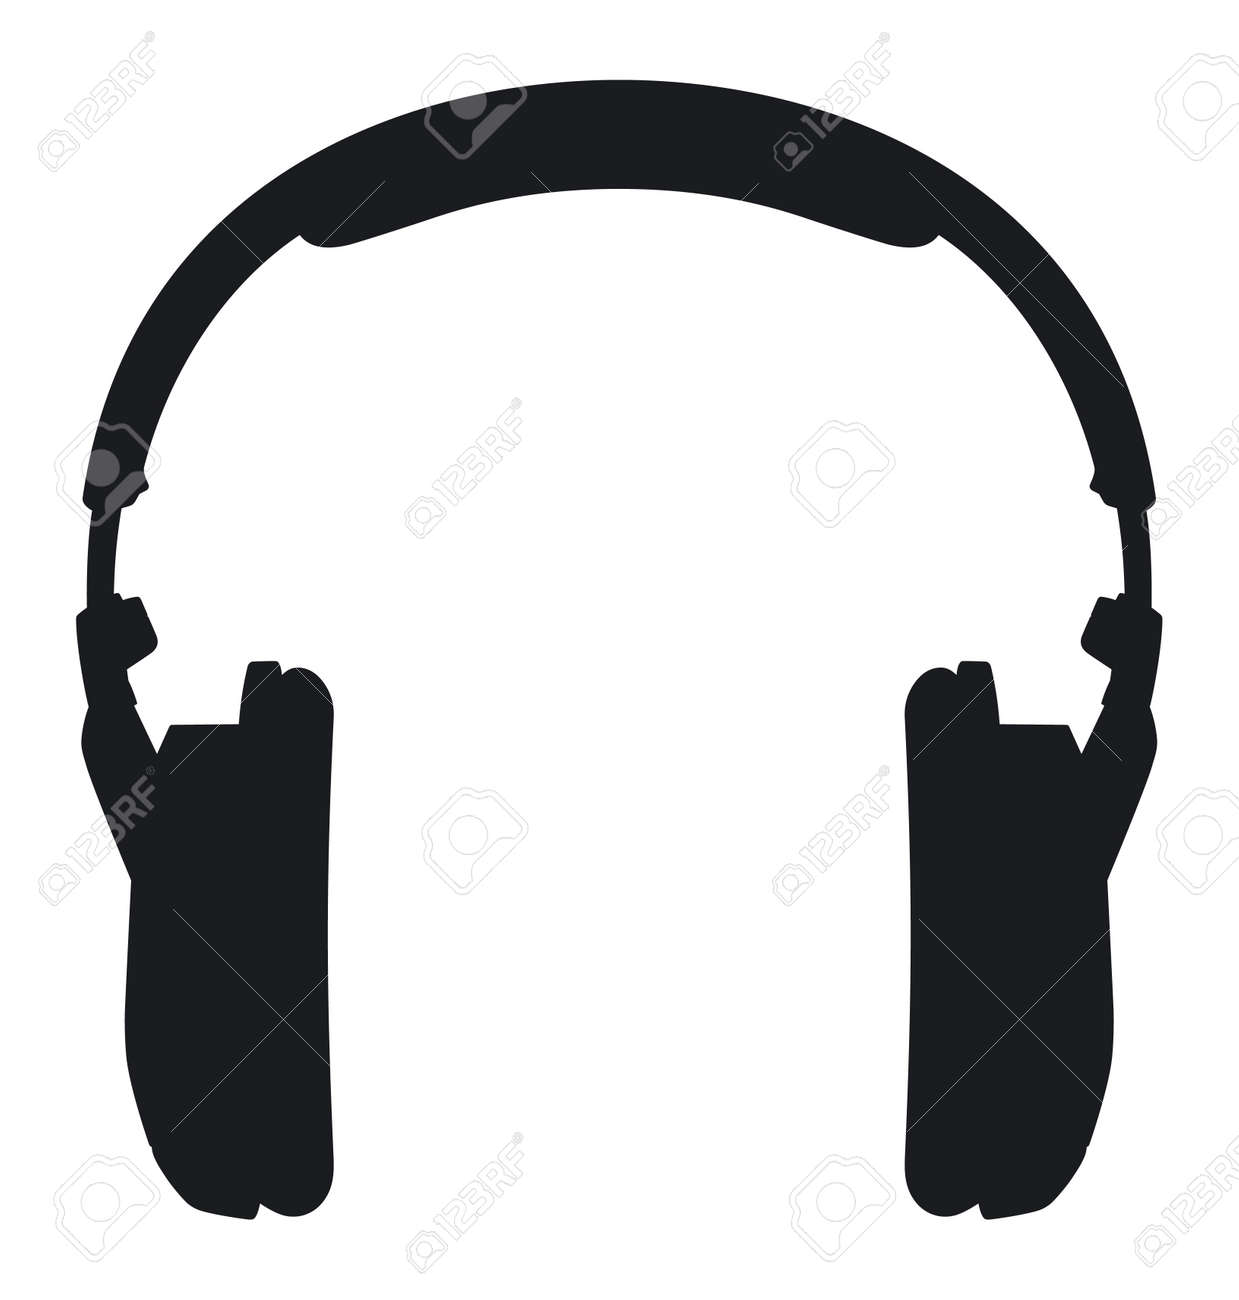 headphones silhouette on a white background royalty free cliparts rh 123rf com headphones vector art headphones vector logo